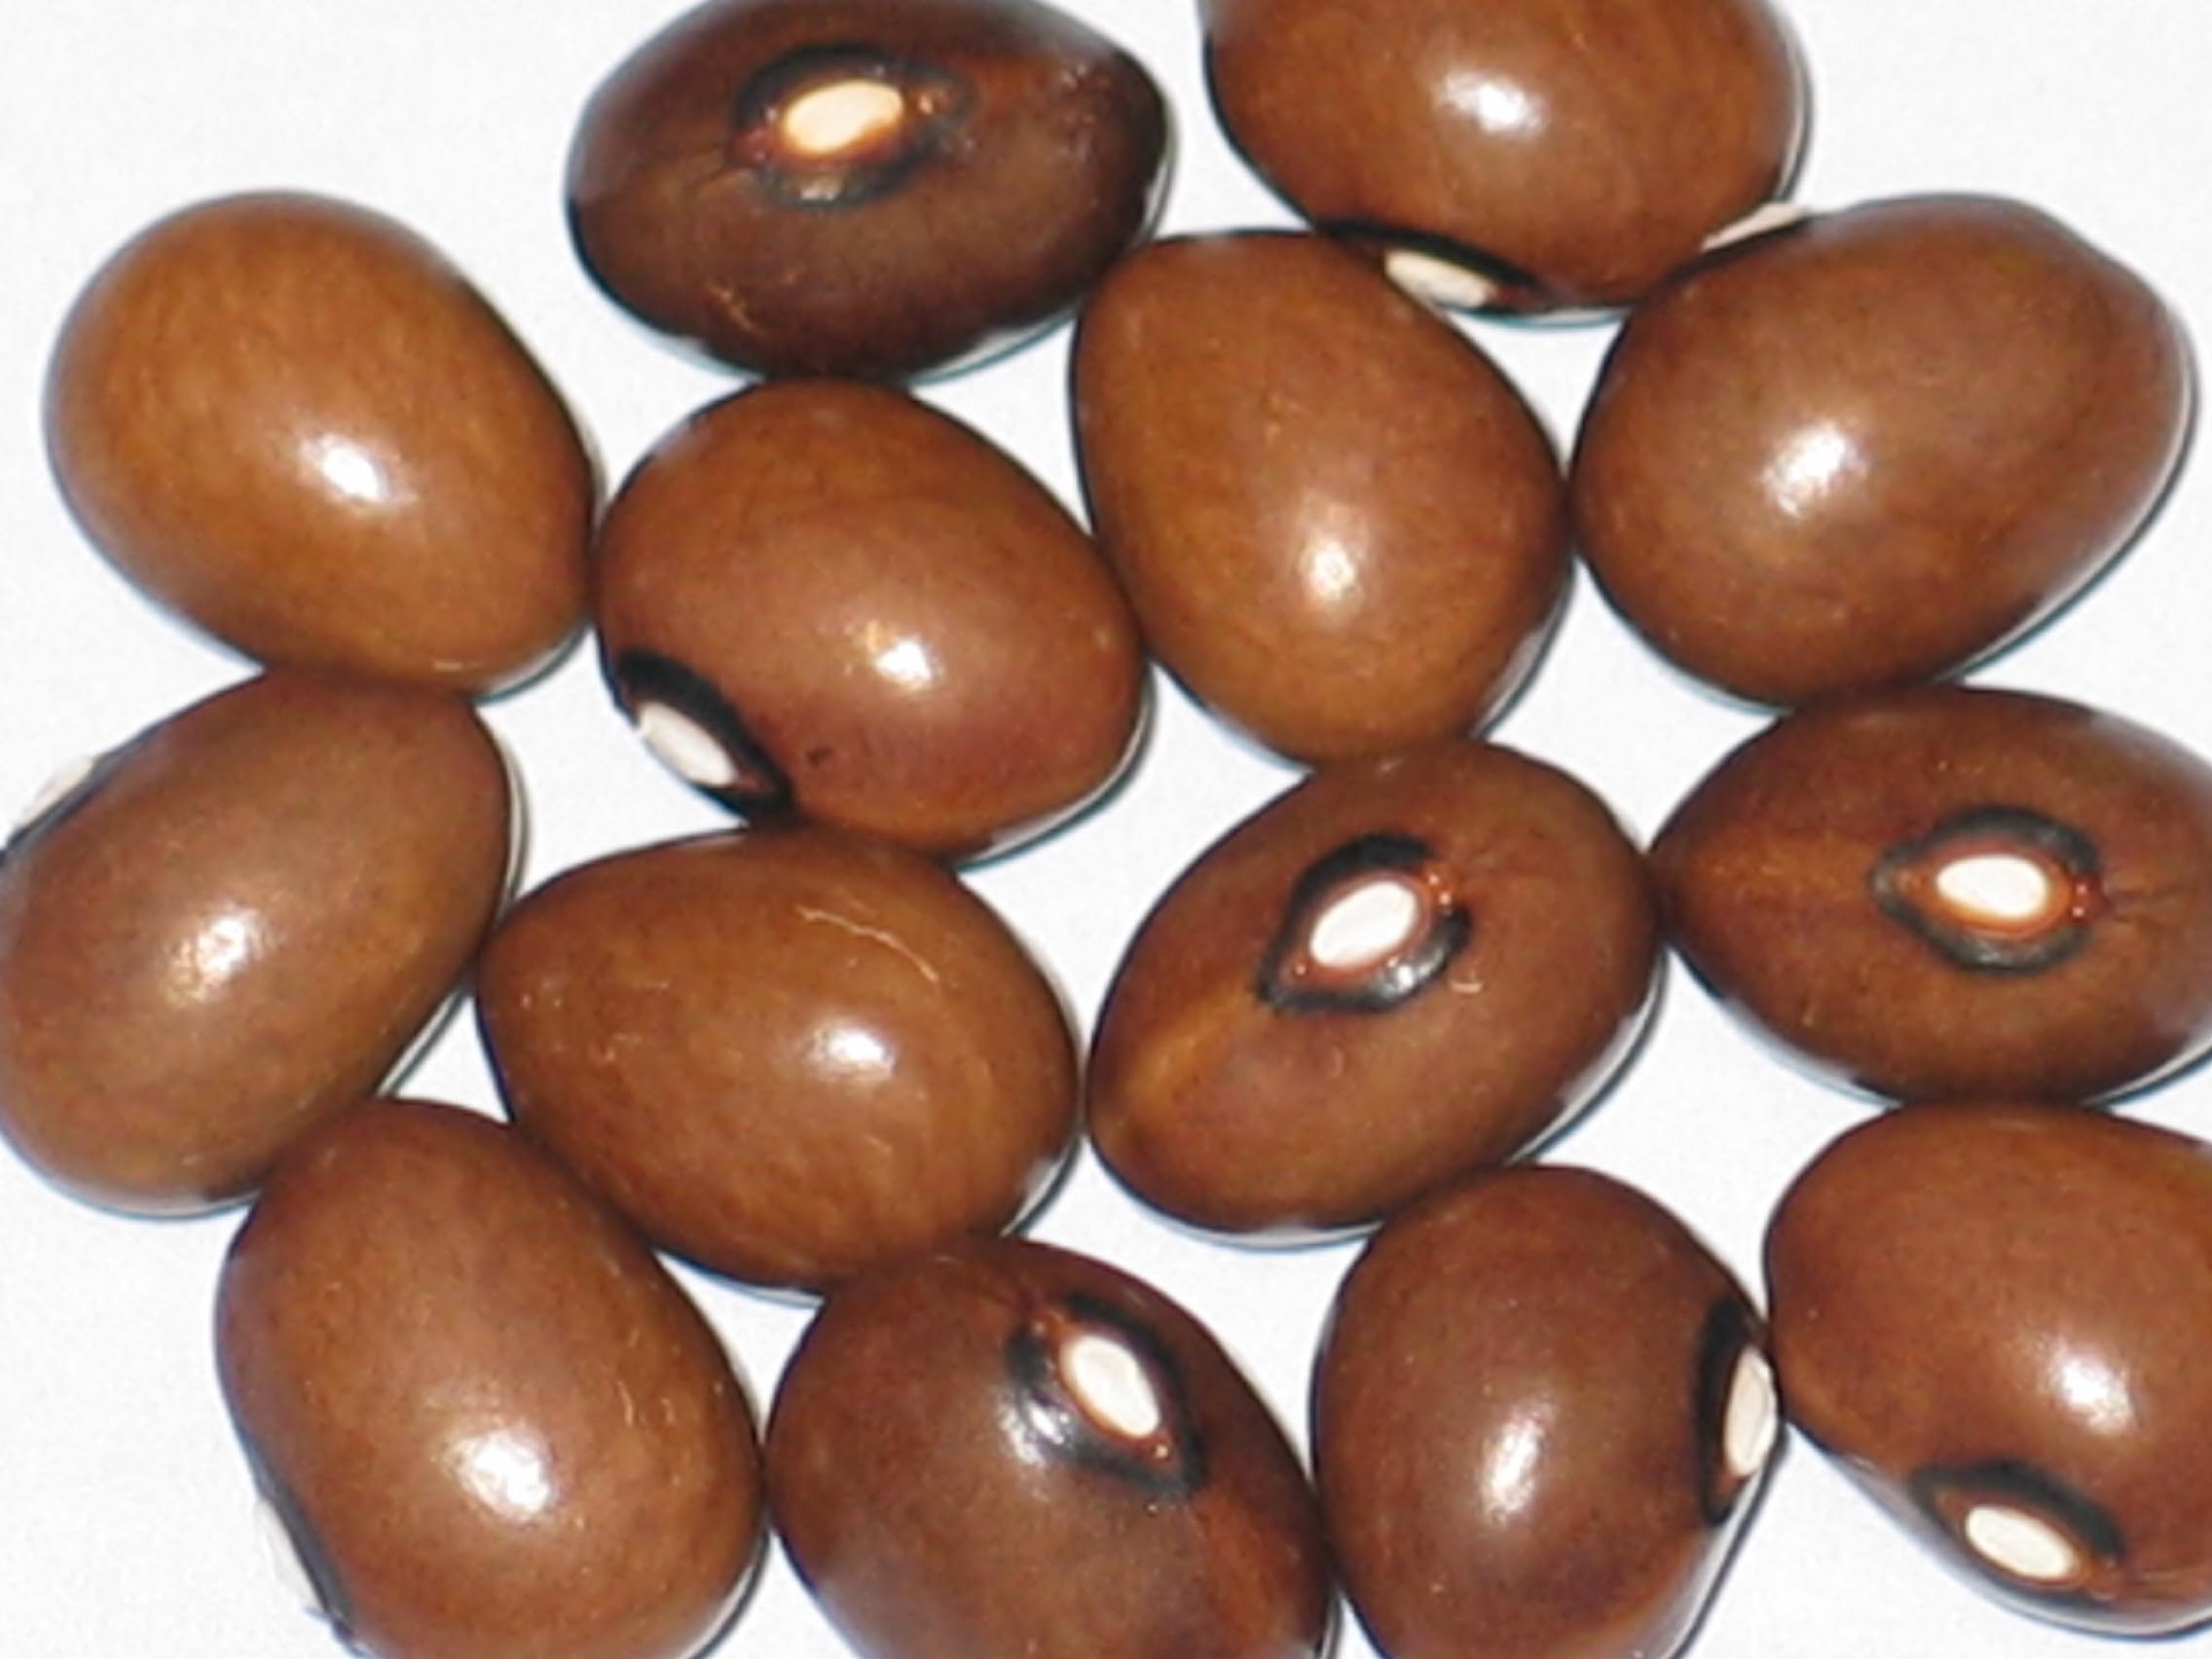 image of Graines de Cafe beans